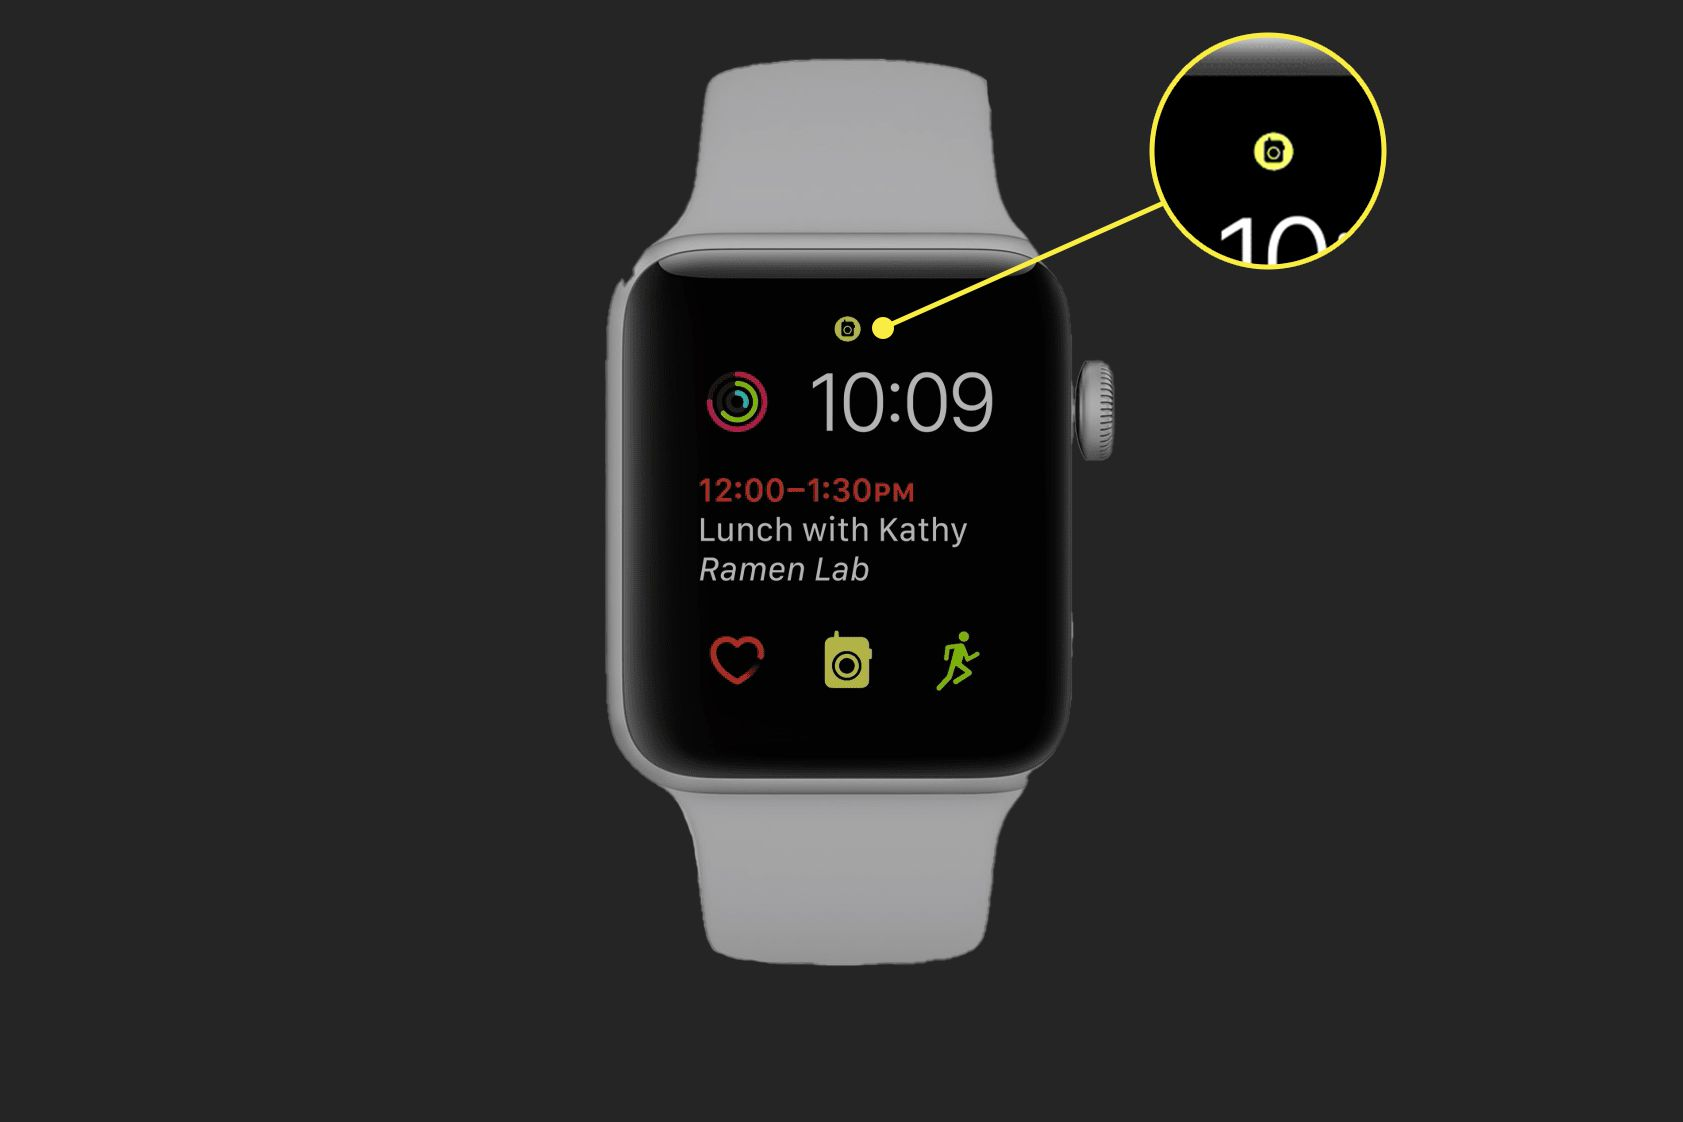 The Walkie-Talkie app icon on the Apple Watch home screen